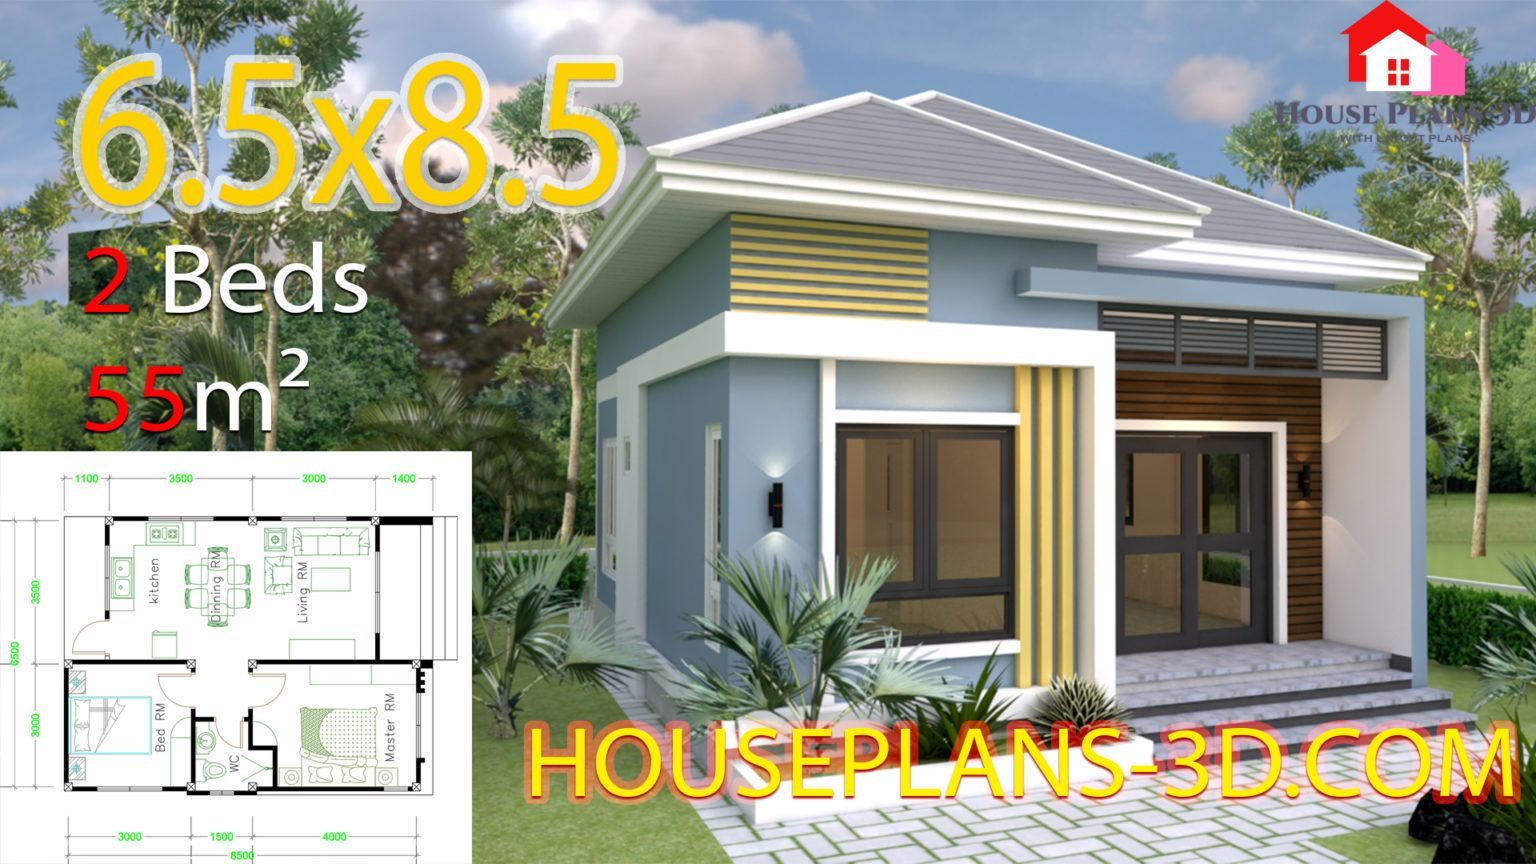 House Design 10x18 With 3 Bedrooms Terrace Roof House Plans 3d Small House Design Plans Small House Design Simple House Plans